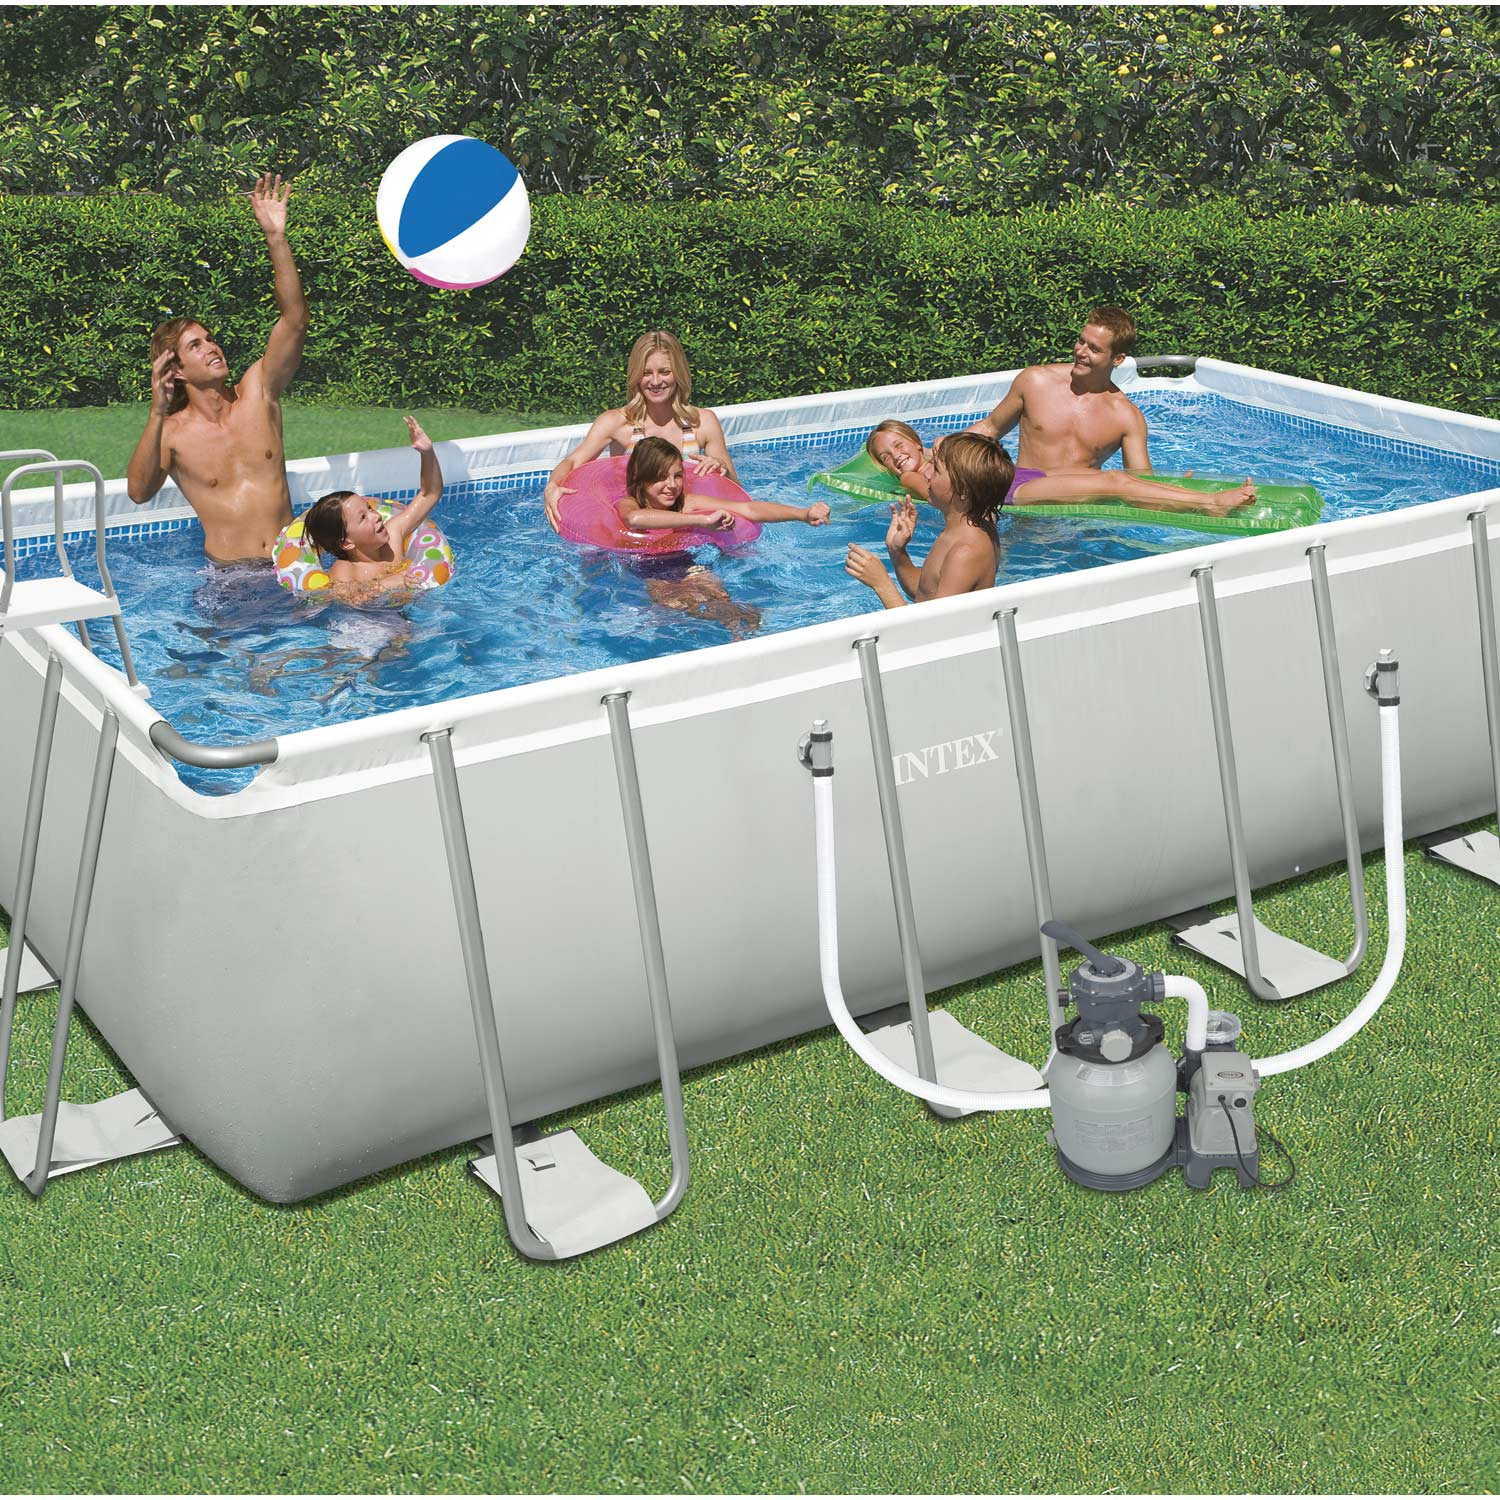 Piscine hors sol autoportante tubulaire ultra silver intex for Occasion piscine hors sol